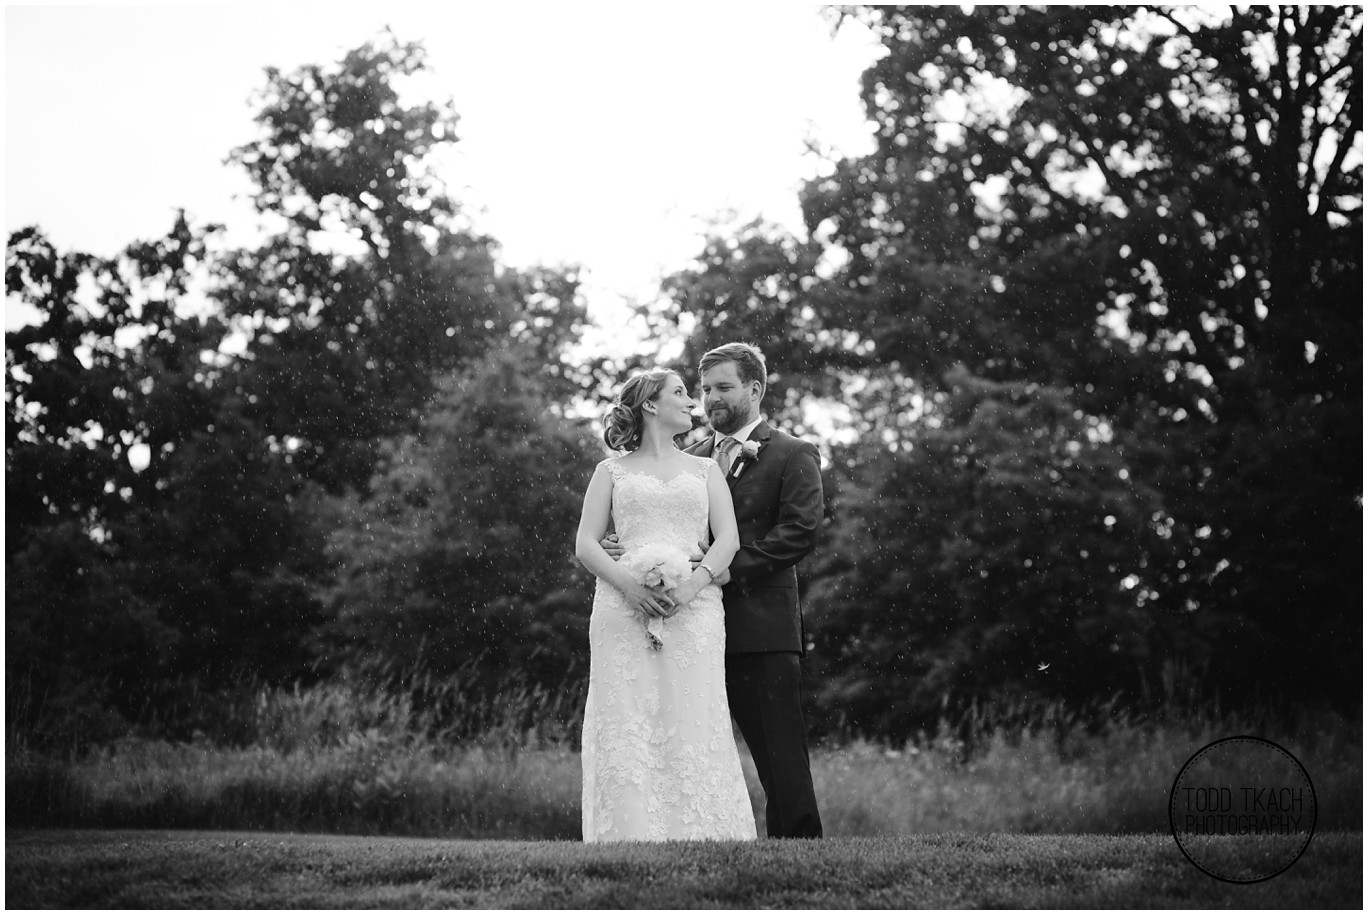 Phil & Caitlin - Seven Oaks - Between the Raindrops